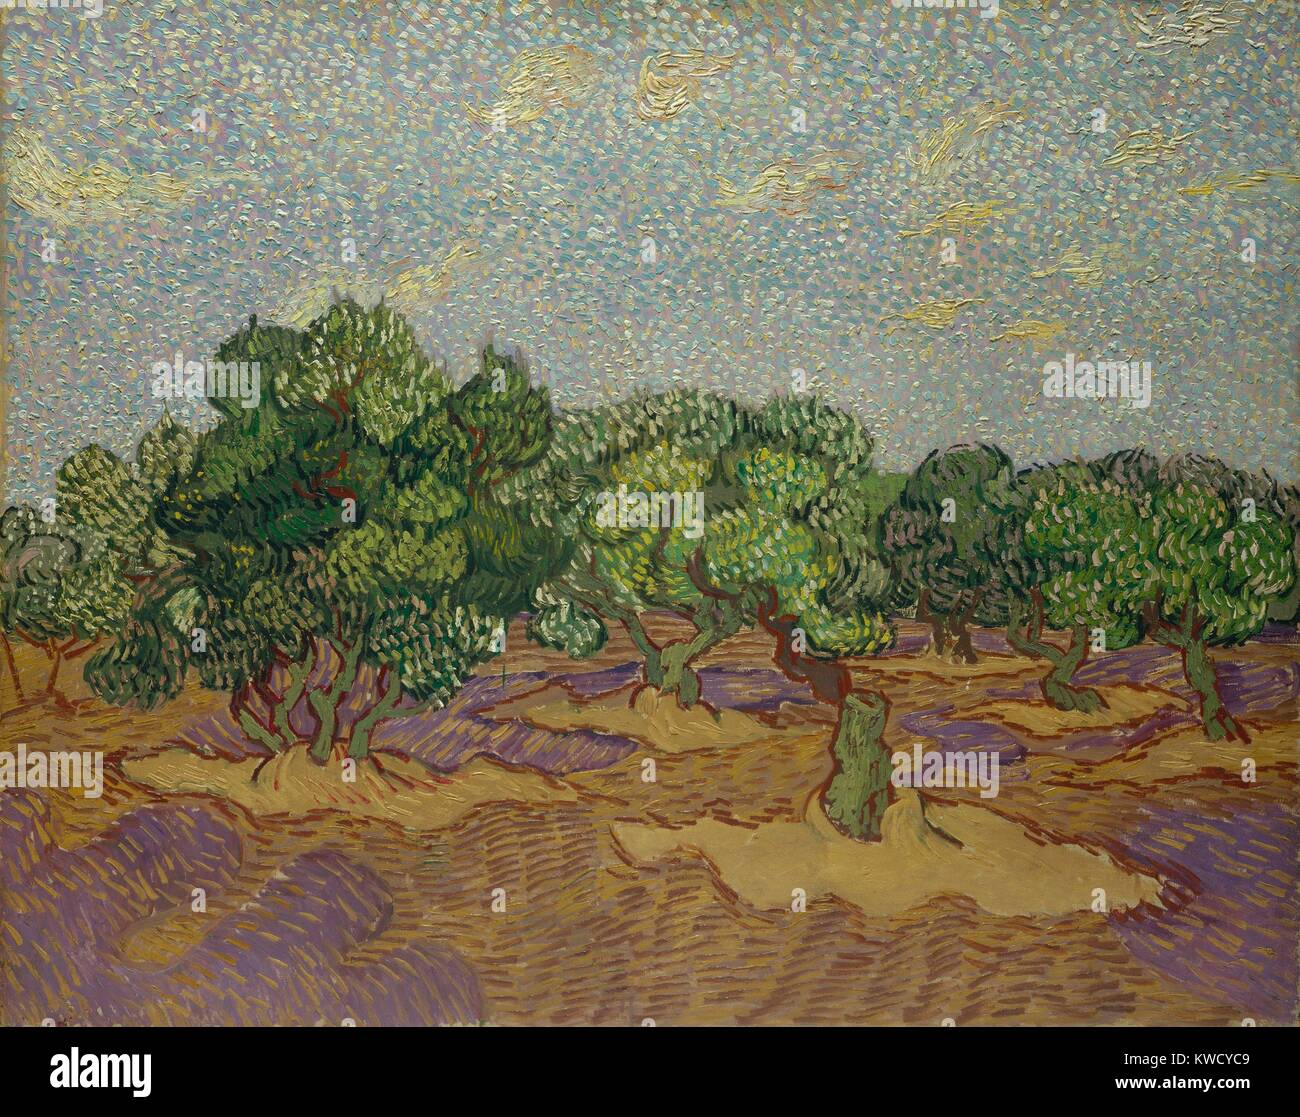 Olive Trees, by Vincent Van Gogh, 1889, Dutch Post-Impressionist, oil on canvas. The work was painted directly from - Stock Image